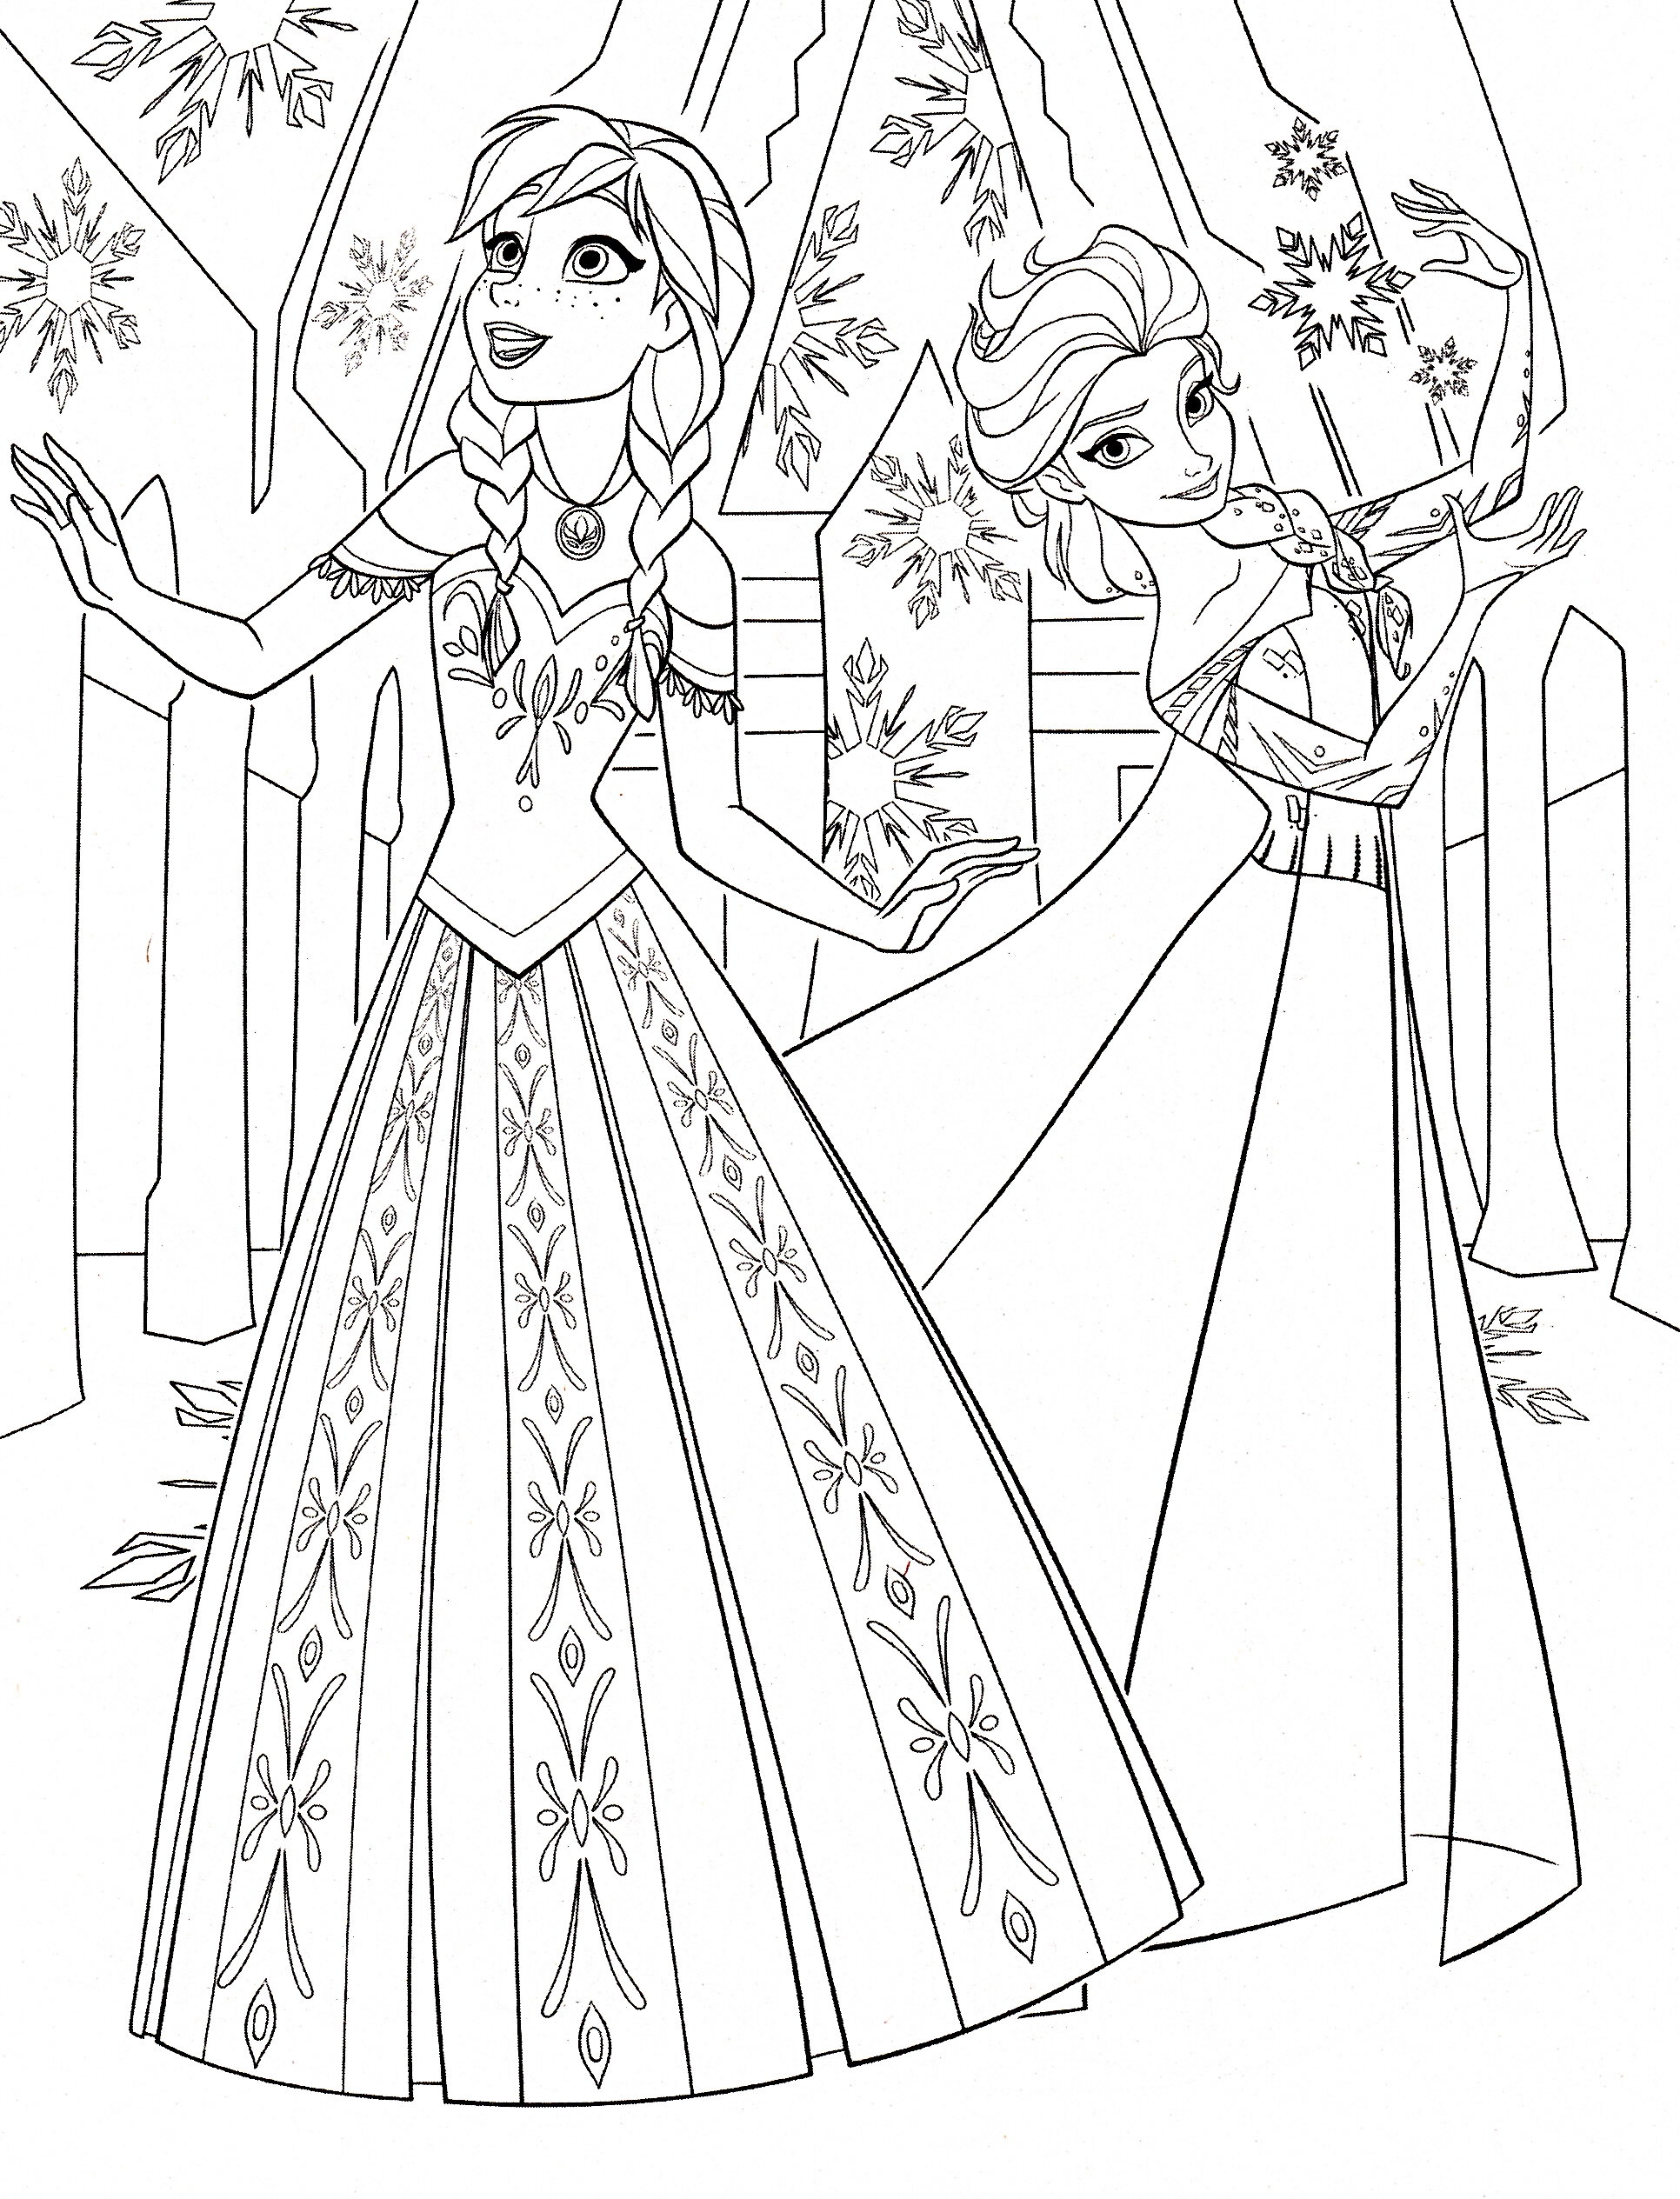 Frozen Colouring Sheets On Pinterest